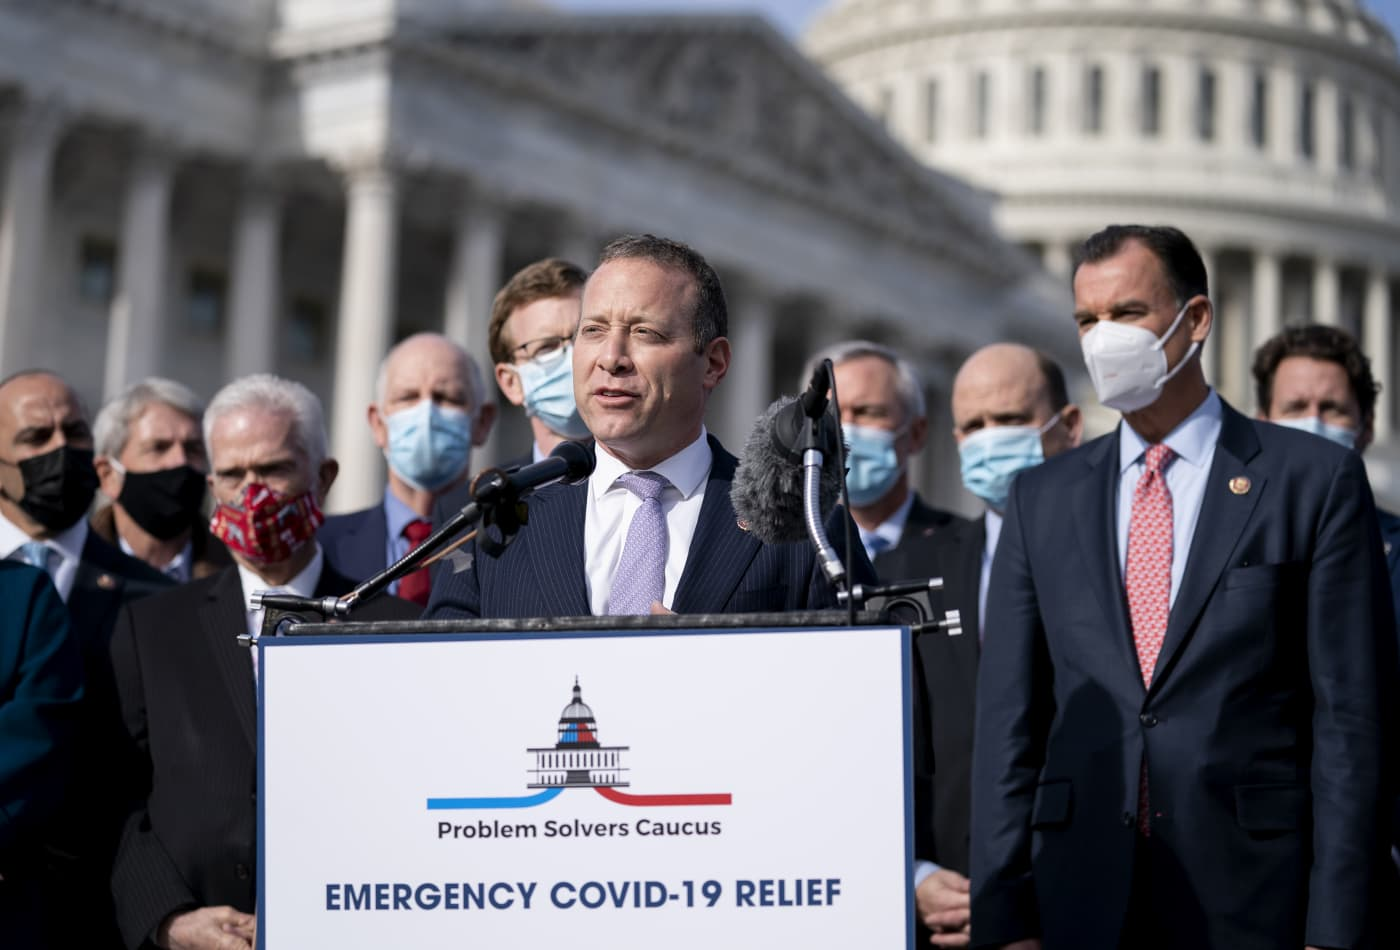 Bipartisan group releases Covid relief bill as Congress faces pressure to send help